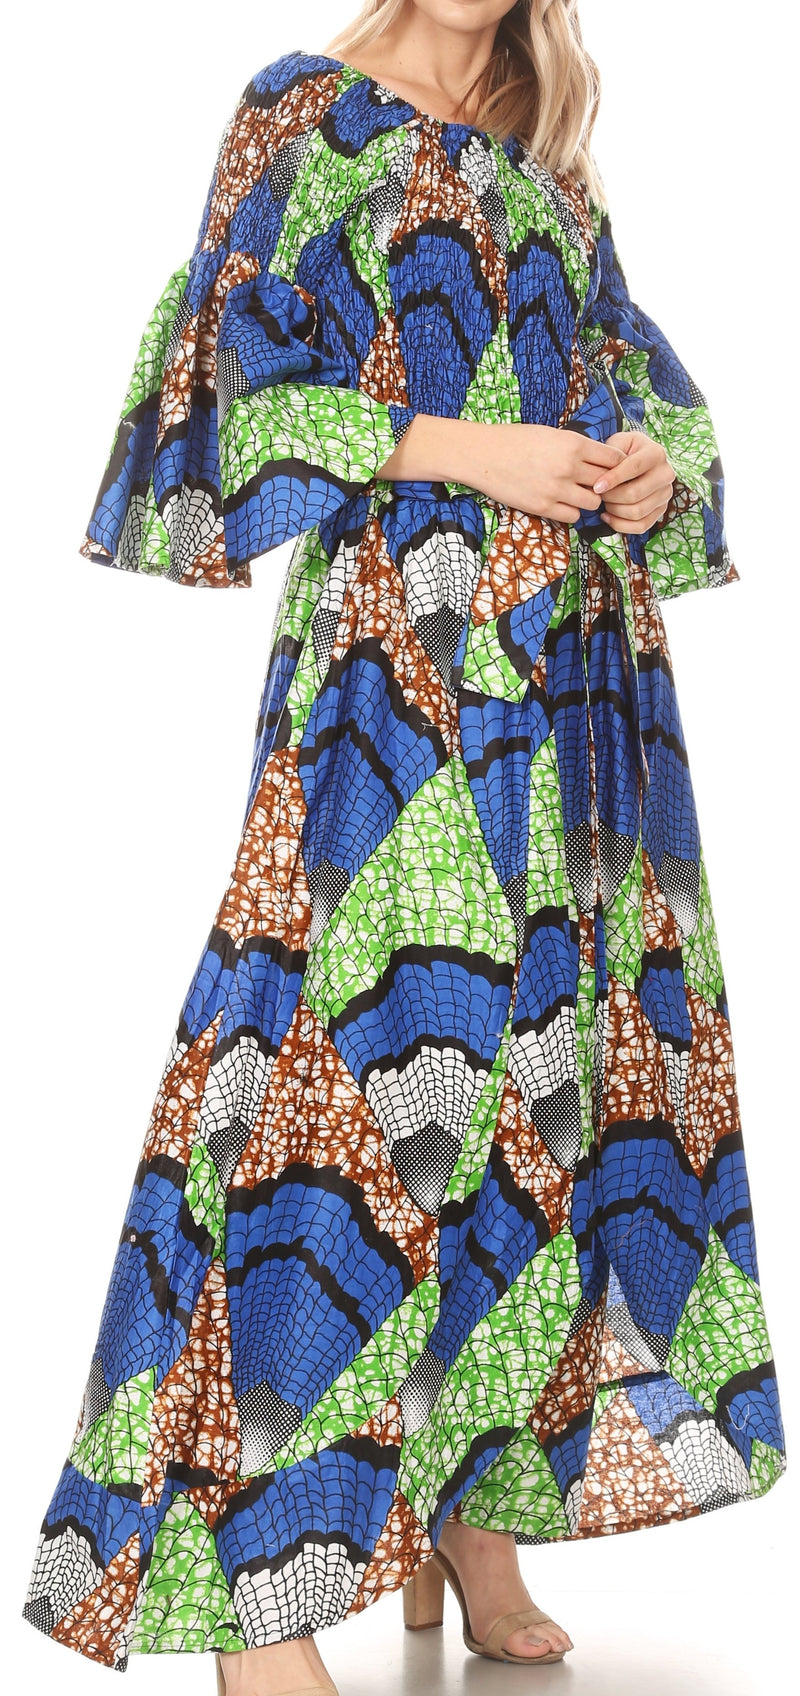 Sakkas Tesa Women's Off the Shoulder Top Pants Set African Ankara Print w/Pockets